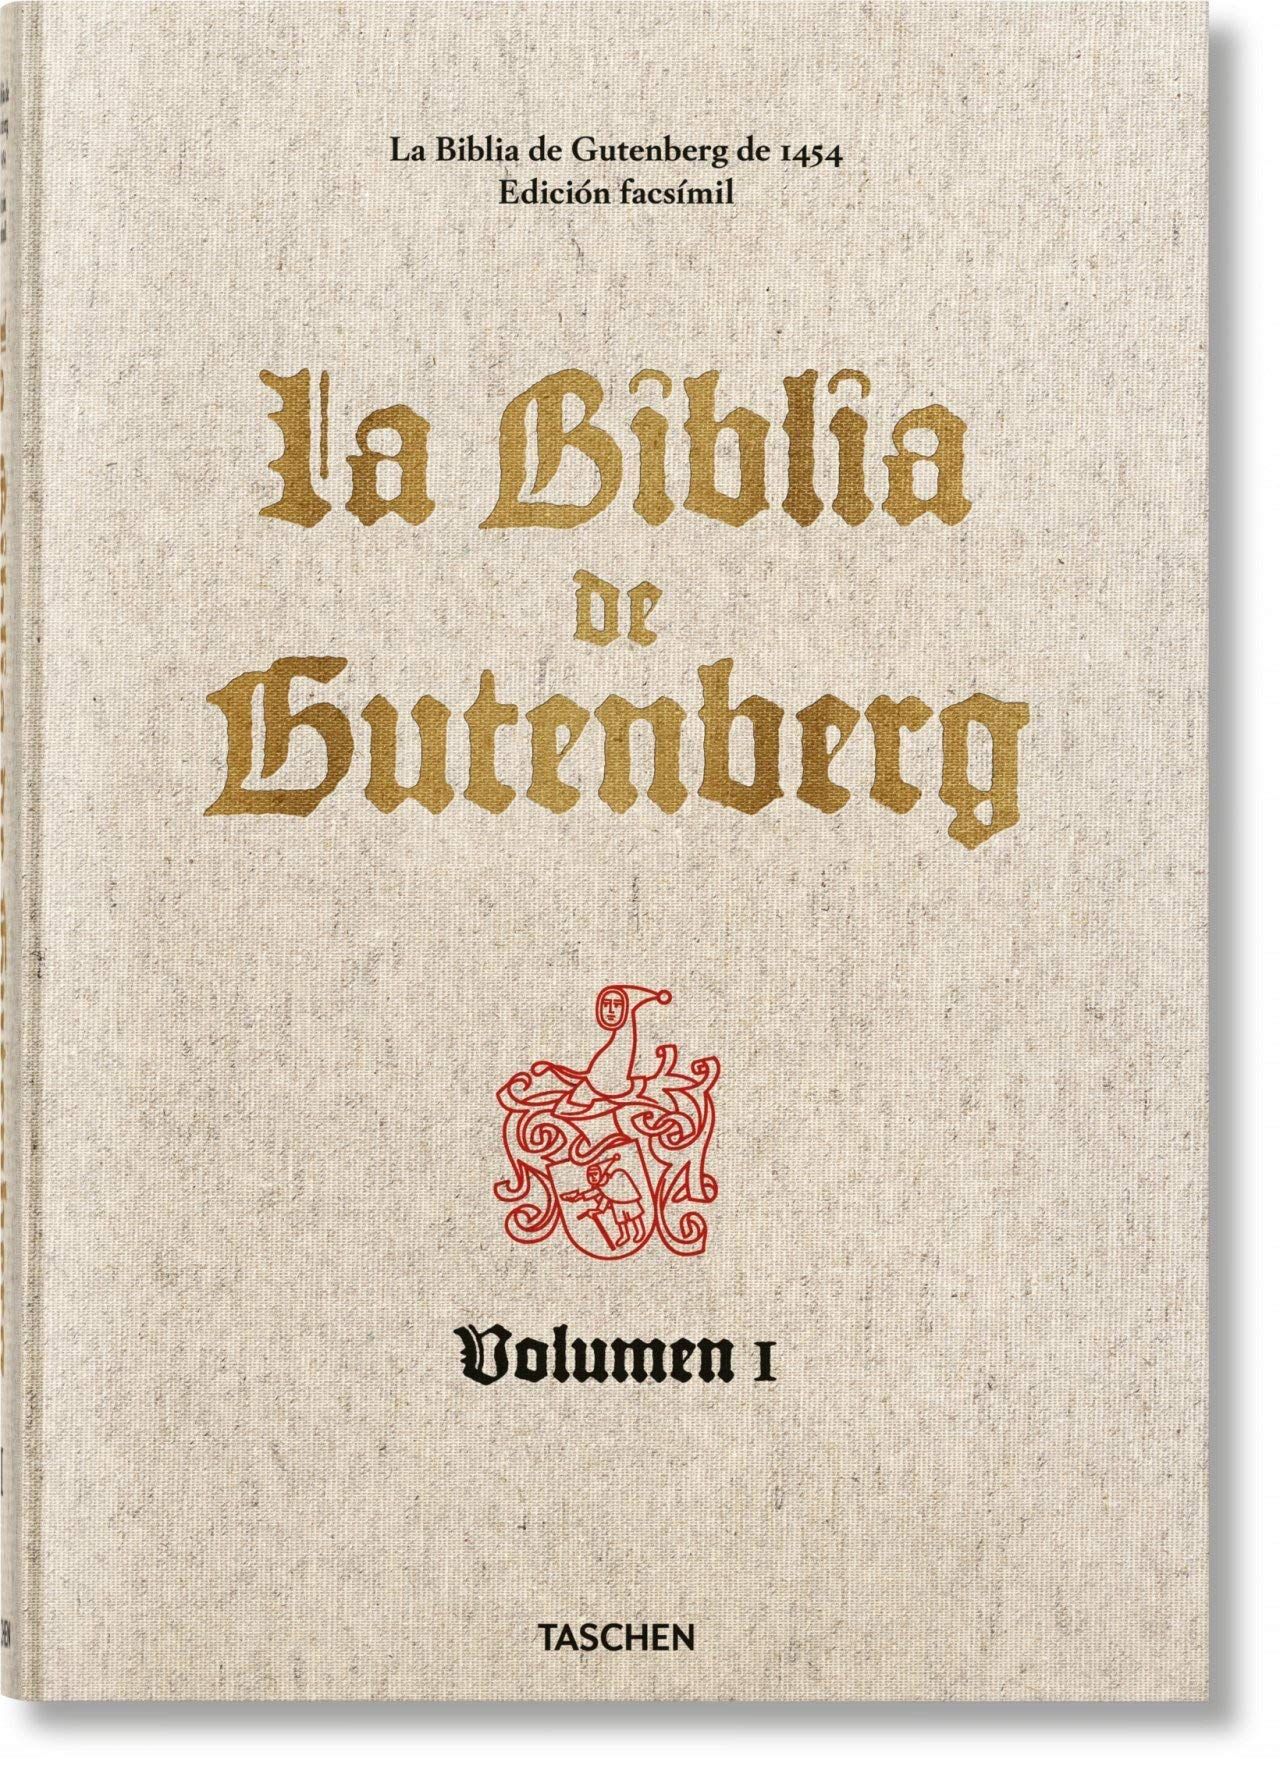 The Gutenberg Bible of 1454 by INGRAM BOOK COMPANY